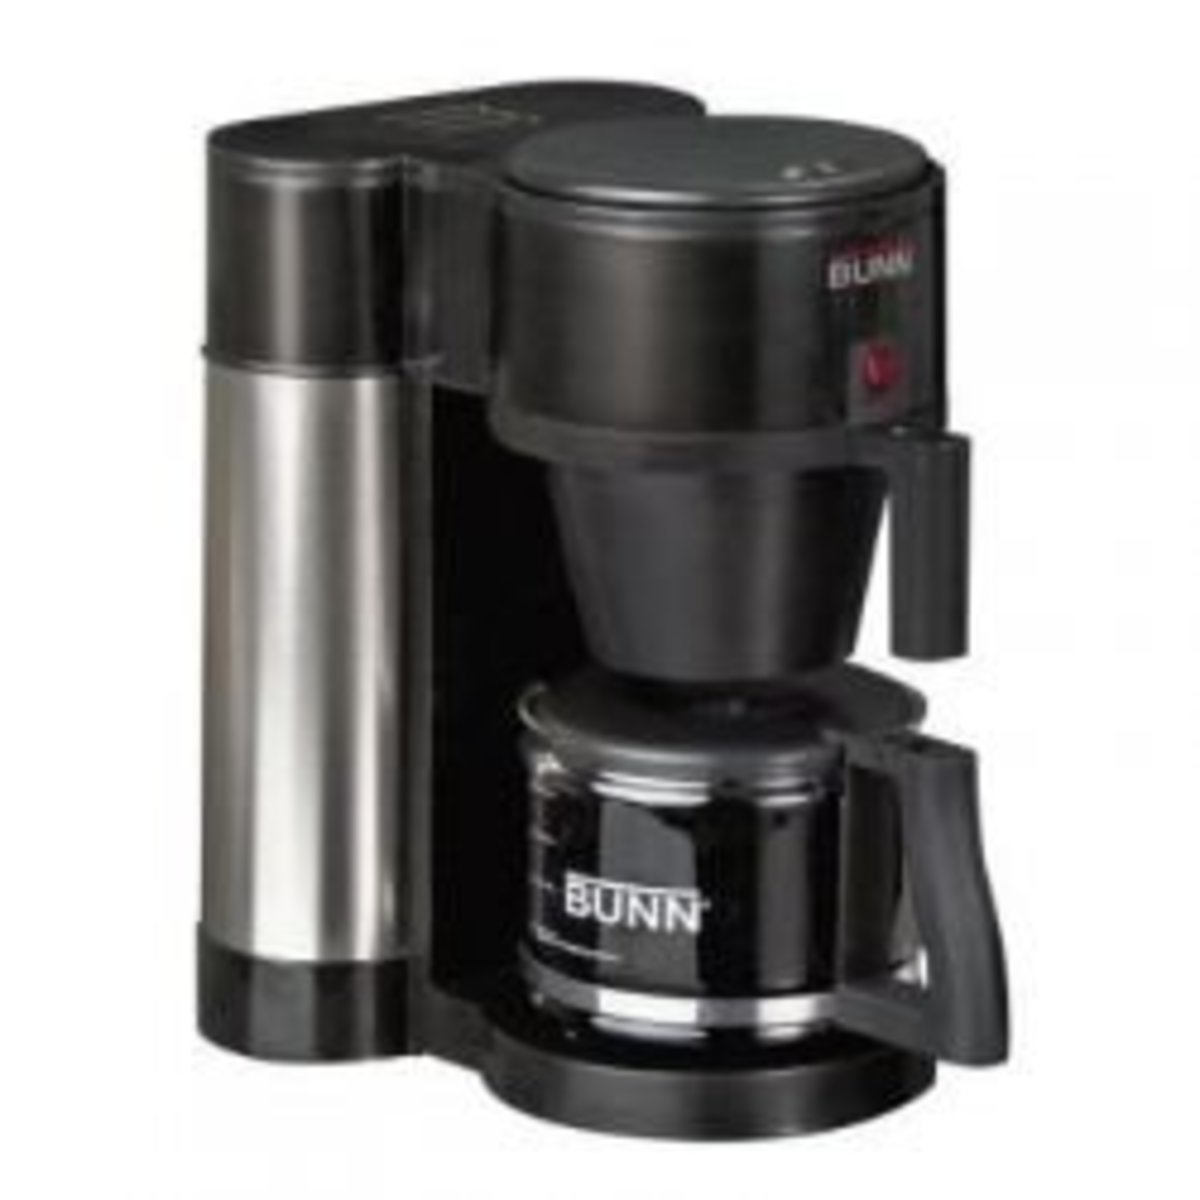 Top Five Best Coffee Makers of 2015